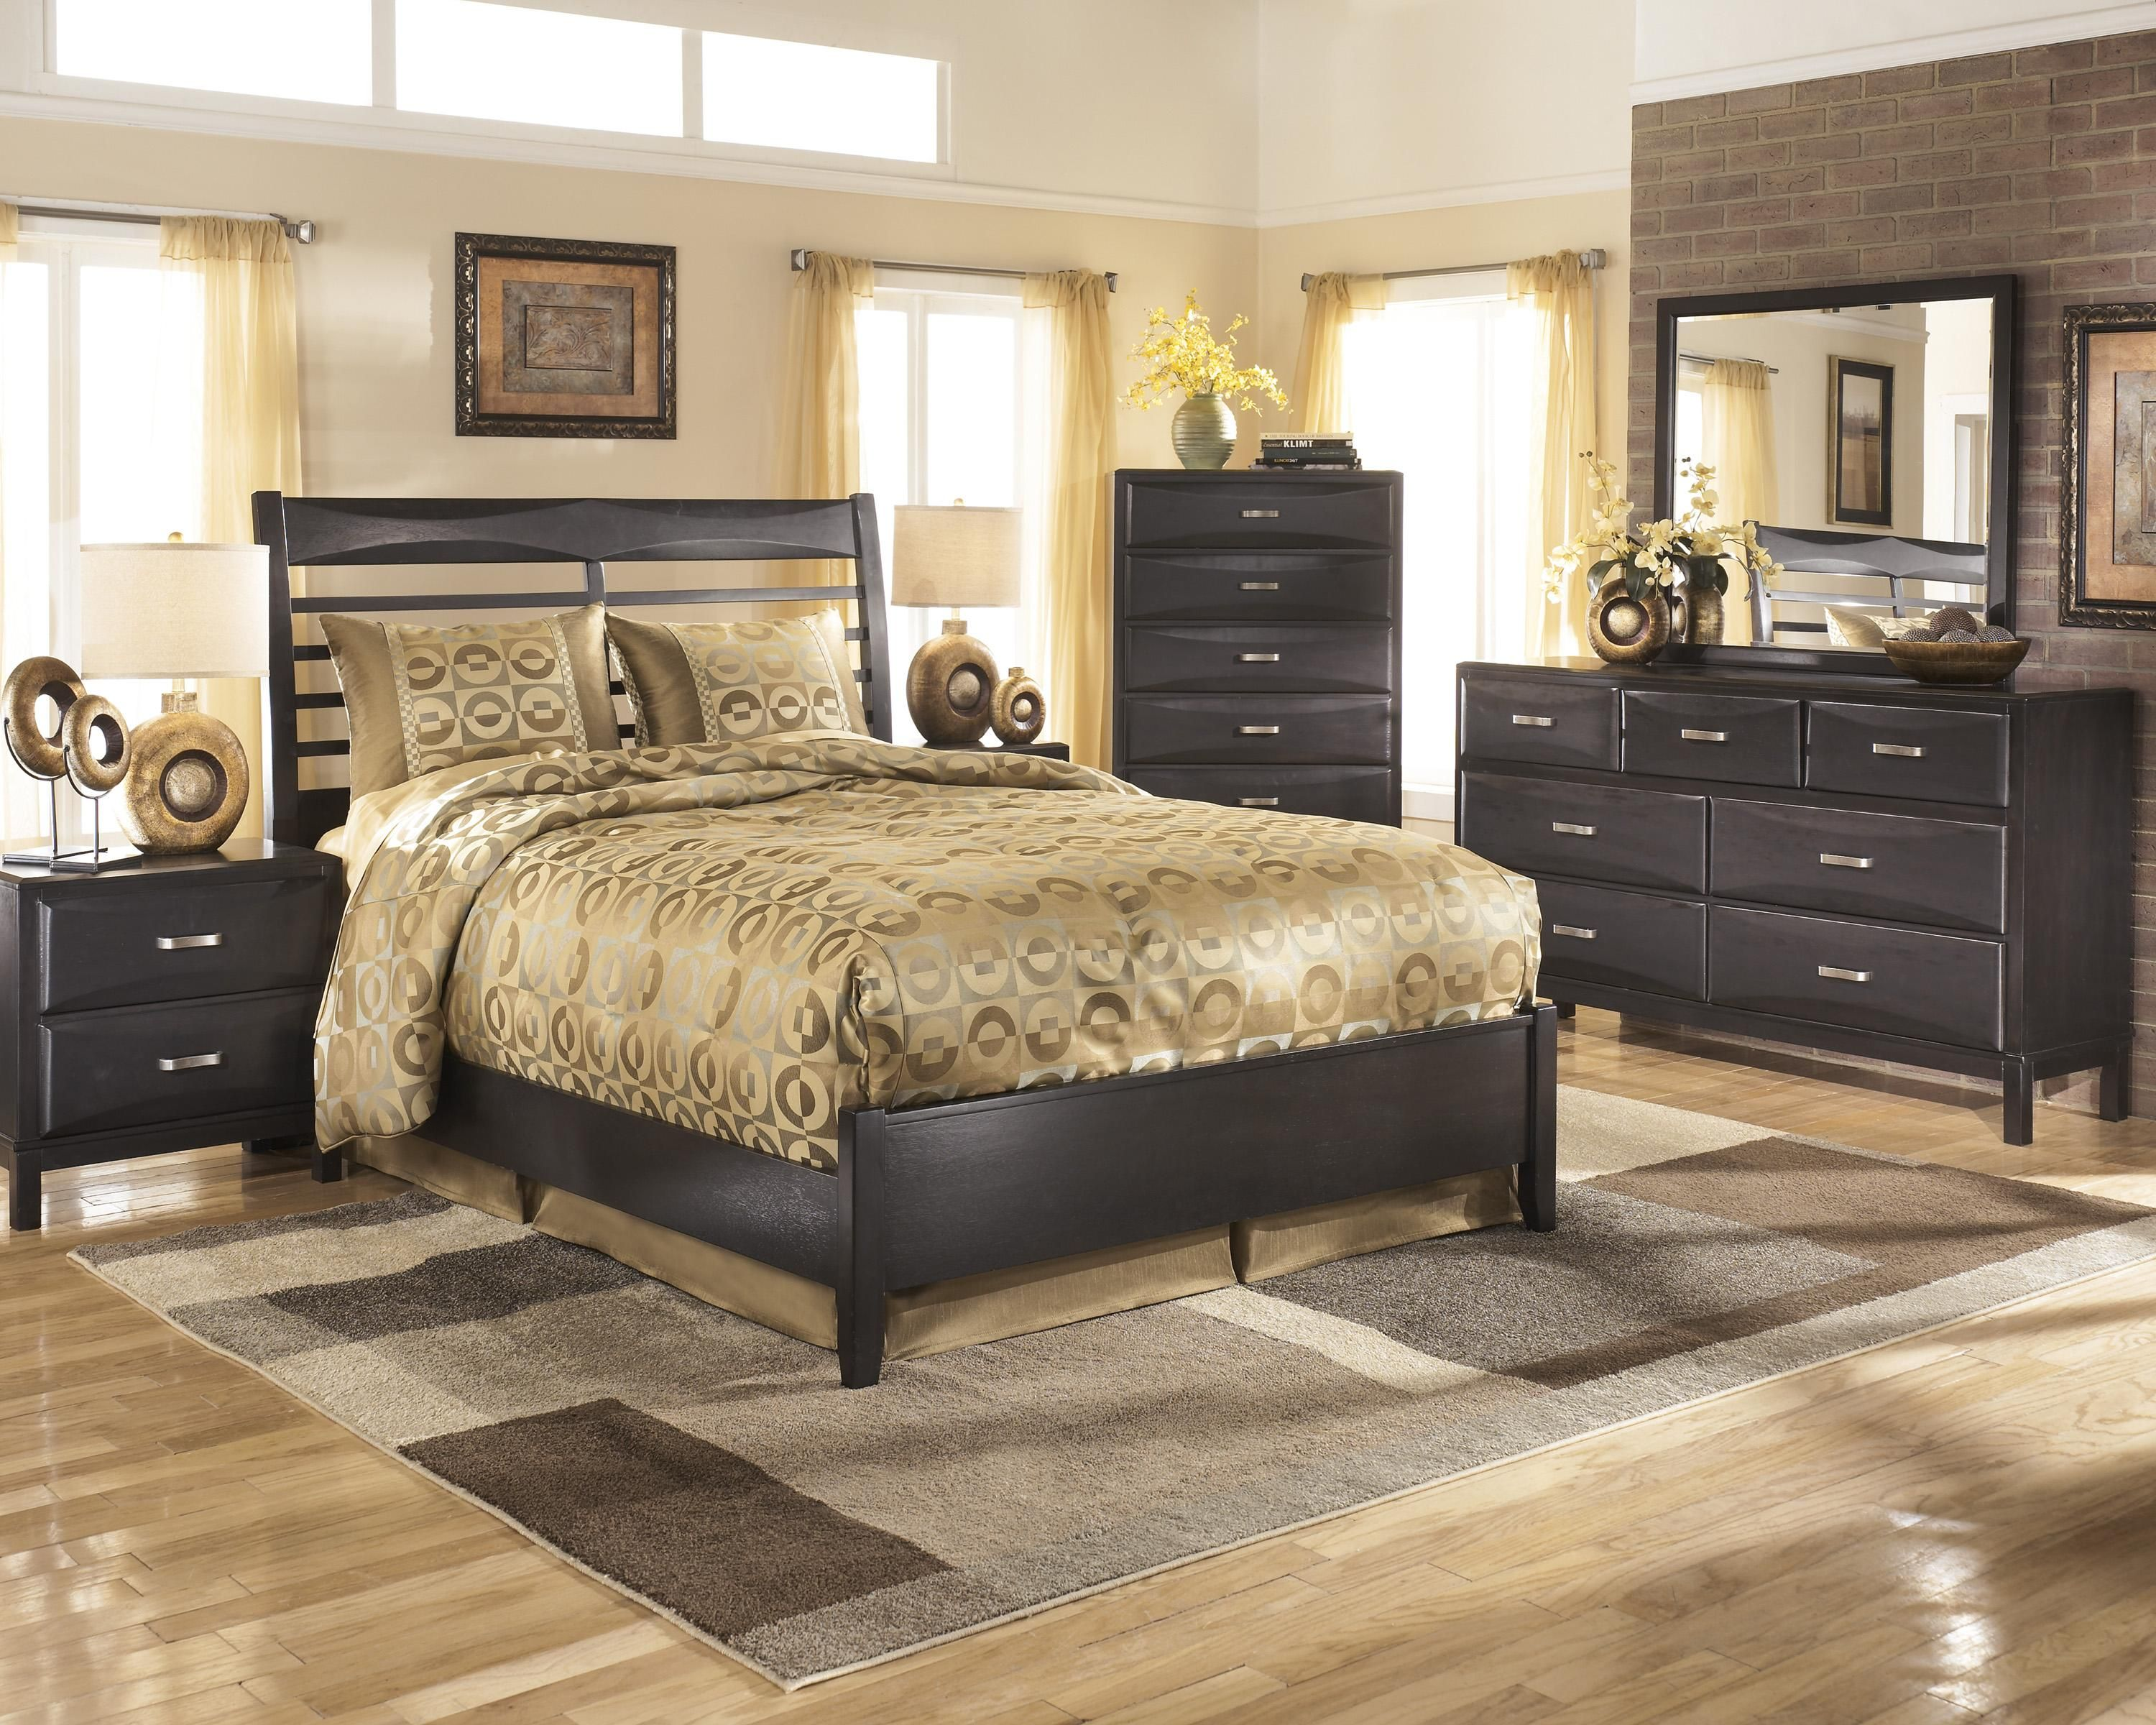 Ashley Furniture Kira Queen Bedroom Group VA MD & DC